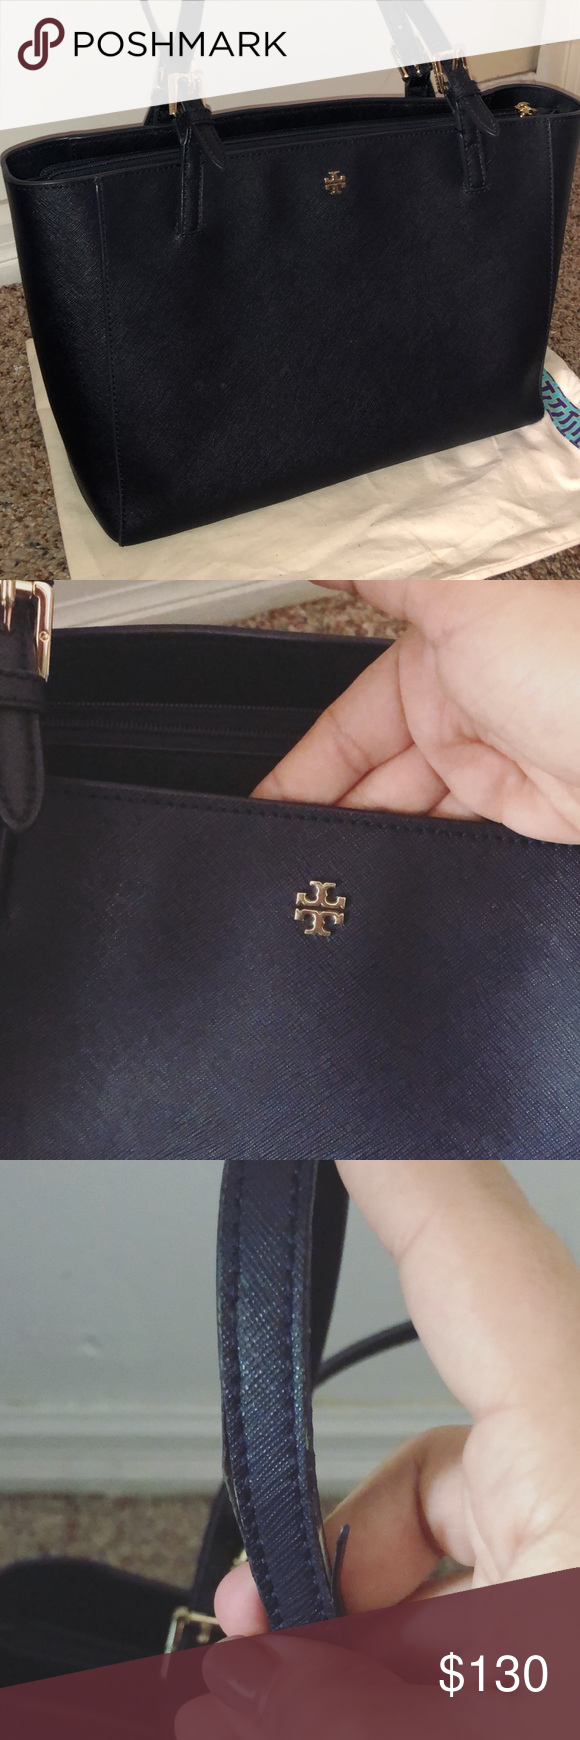 68ac86416 Tory Burch Small York Tote In EUC wear on straps as shown other than that  bag is flawless inside and out color is navy blue Tory Burch Bags Totes